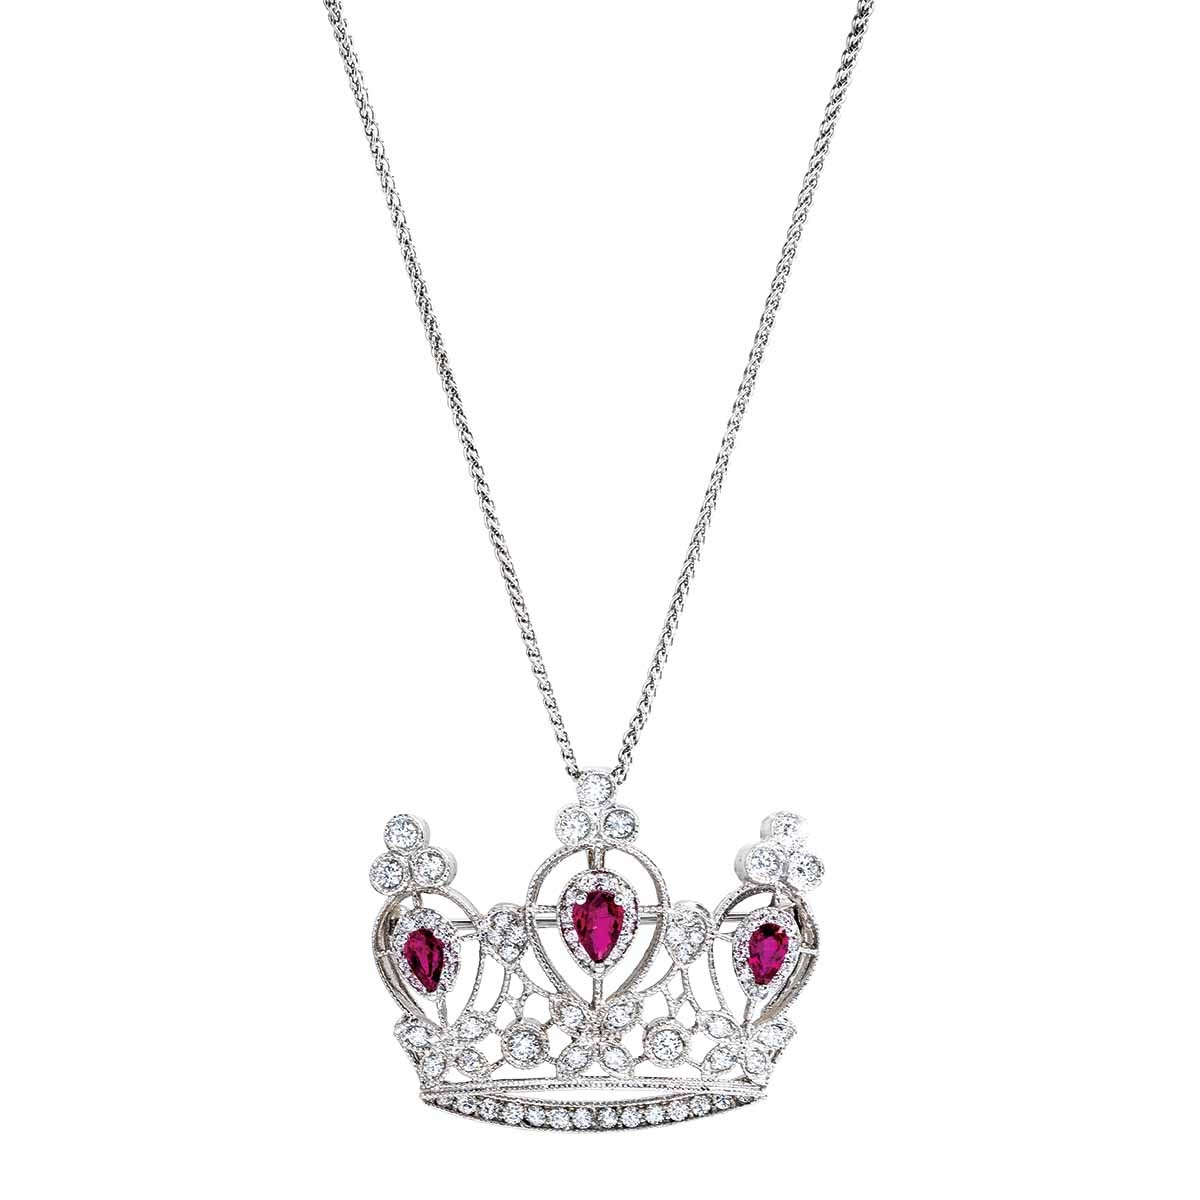 Vintage 2.37 CTW Diamond & Ruby Tiara Necklace